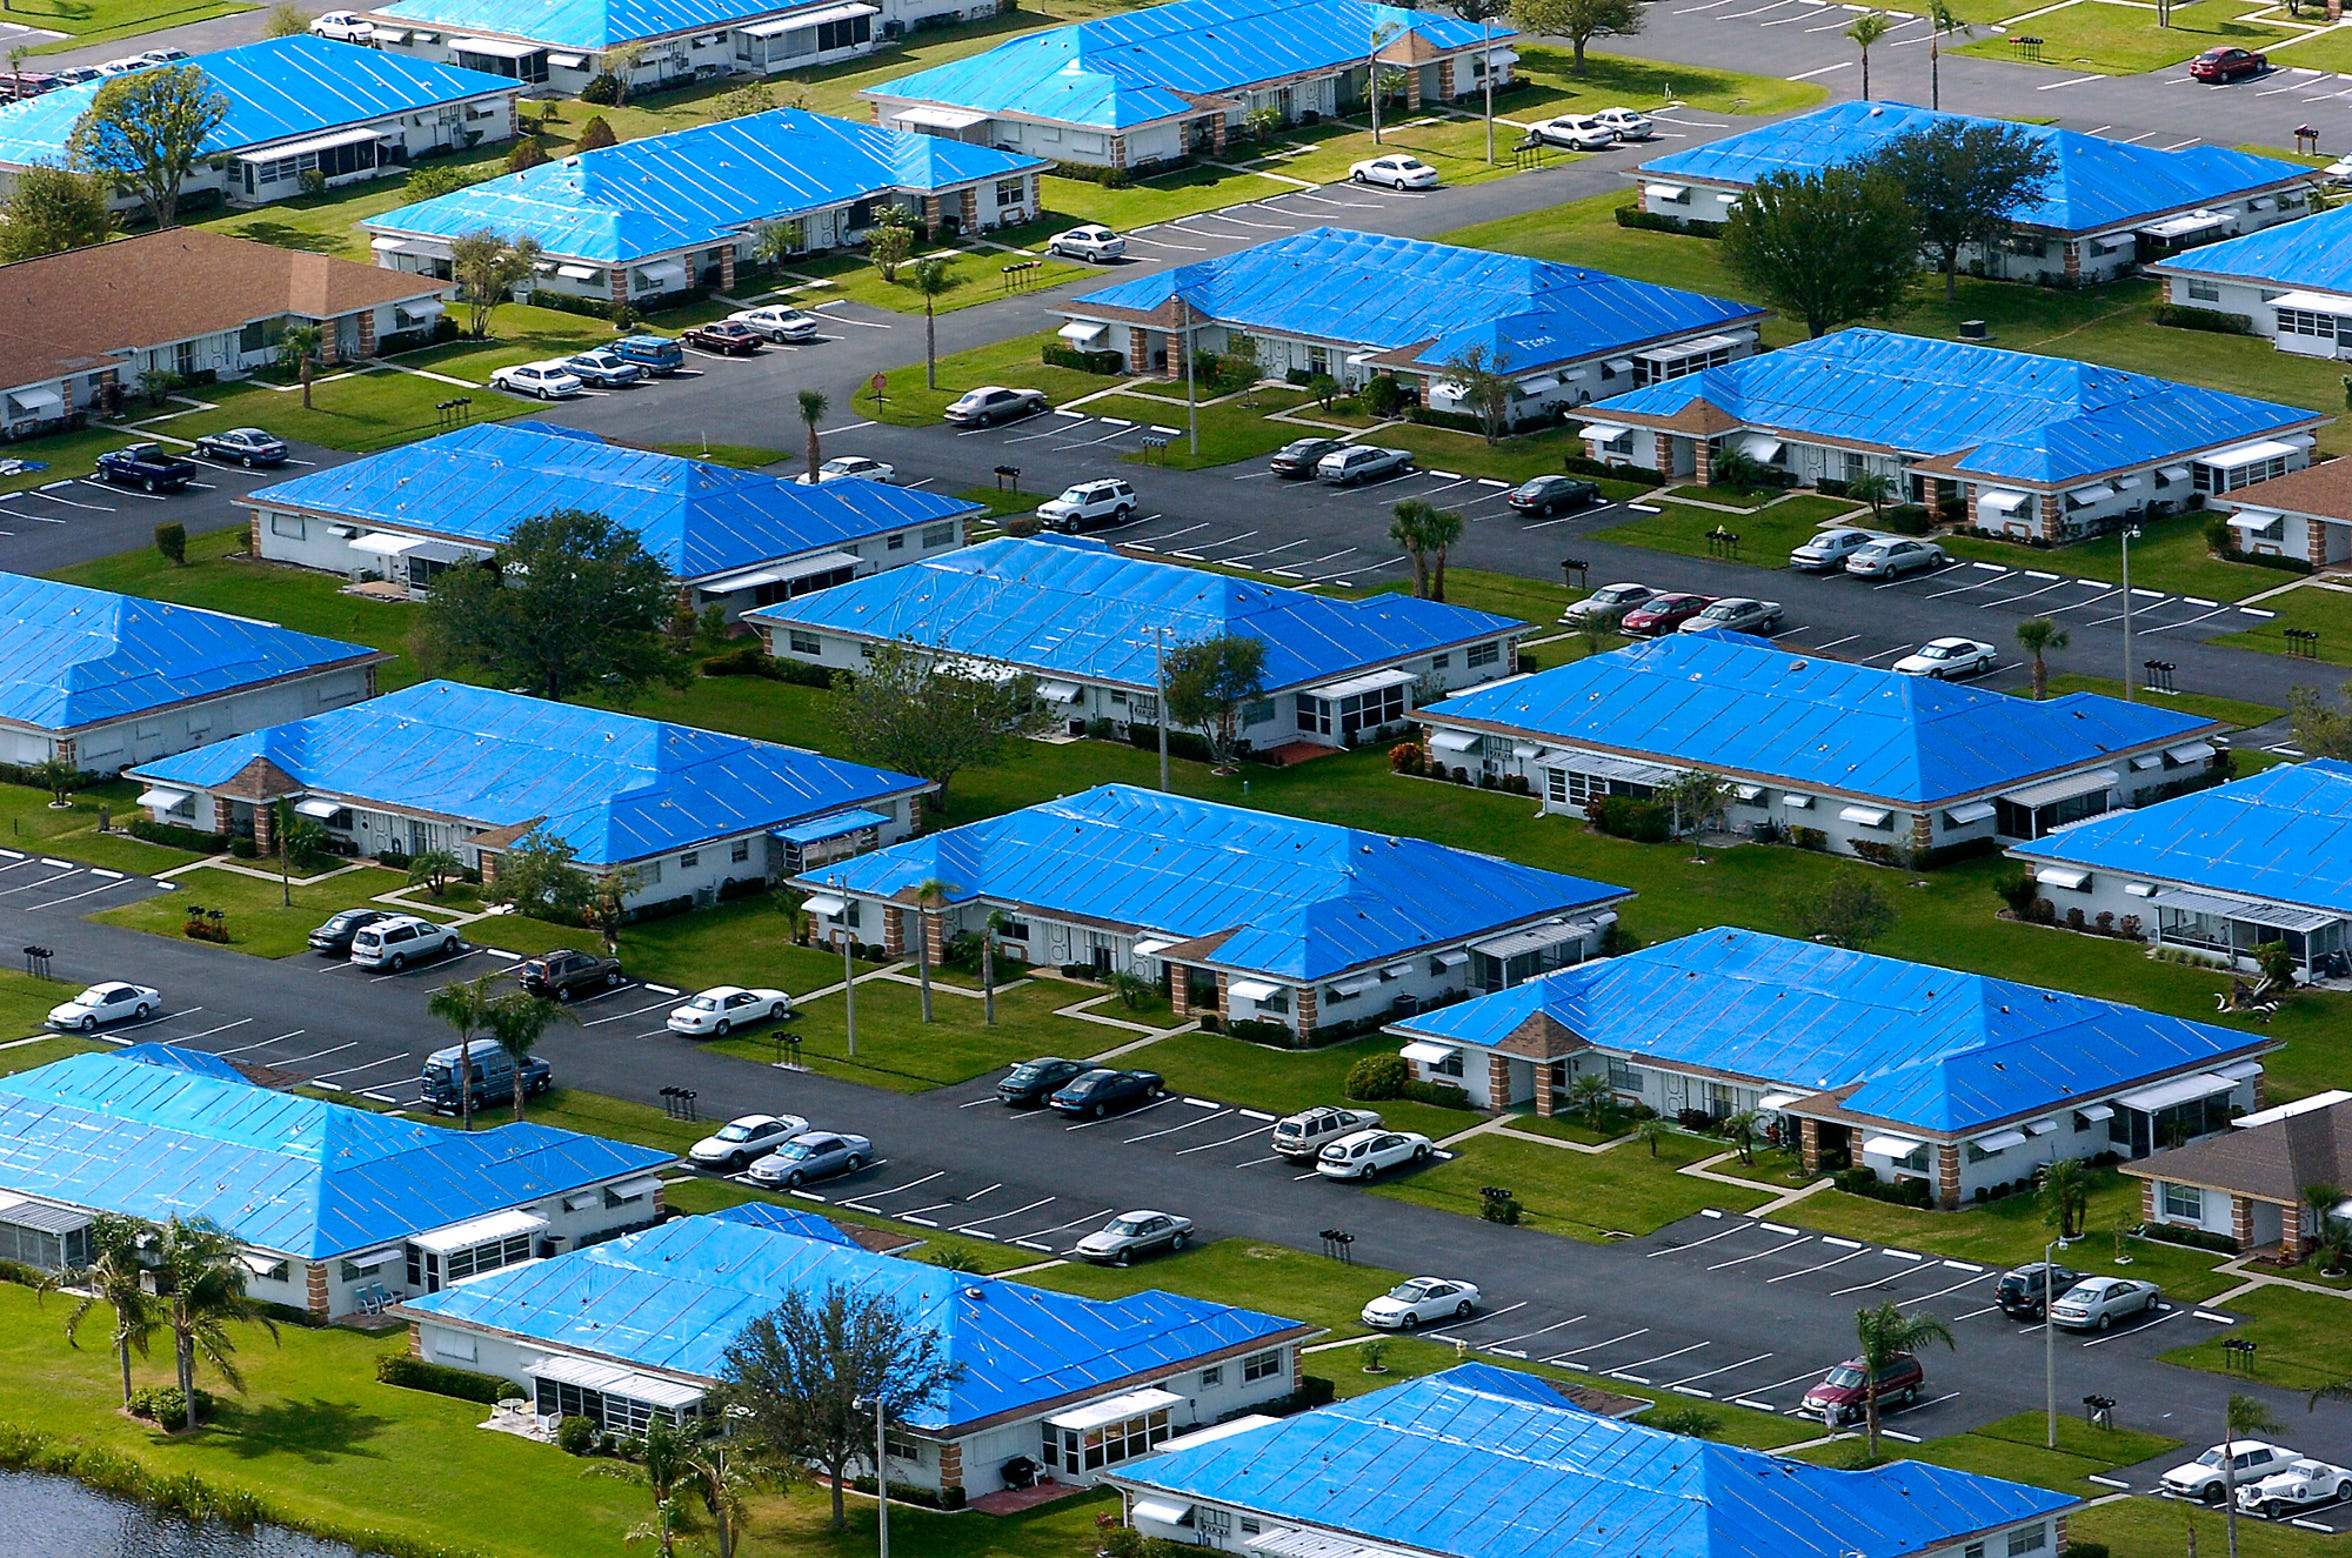 Rows of damaged homes near Savannas State Preserve were covered in blue roofs on Nov. 22, 2004, in Fort Pierce. After two hurricanes passed through the Treasure Coast, many homes were left with damaged roofs and residents were forced to use blue roofs to keep the rain out.